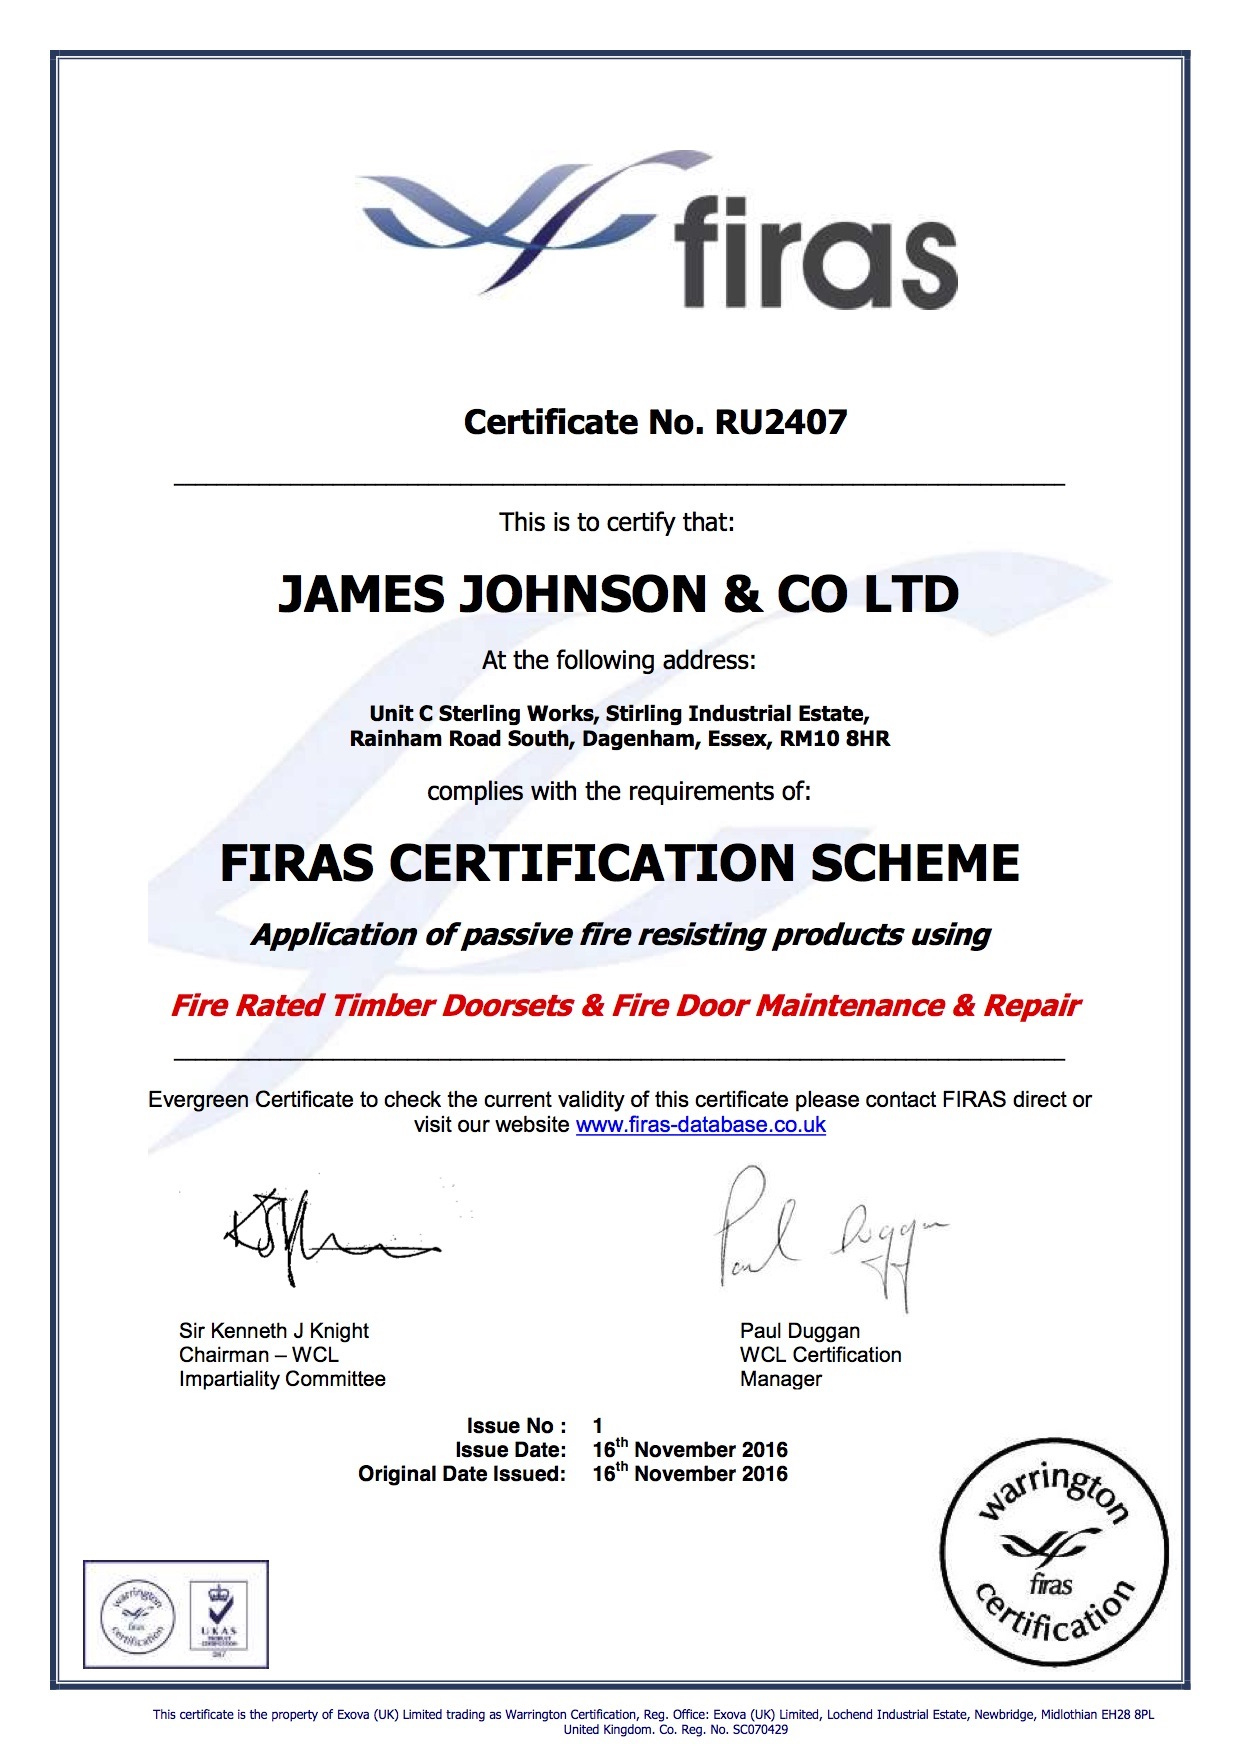 Firas Certificate Issue 1  James Johnson  Co Ltd in Awesome Firefighter Training Certificate Template